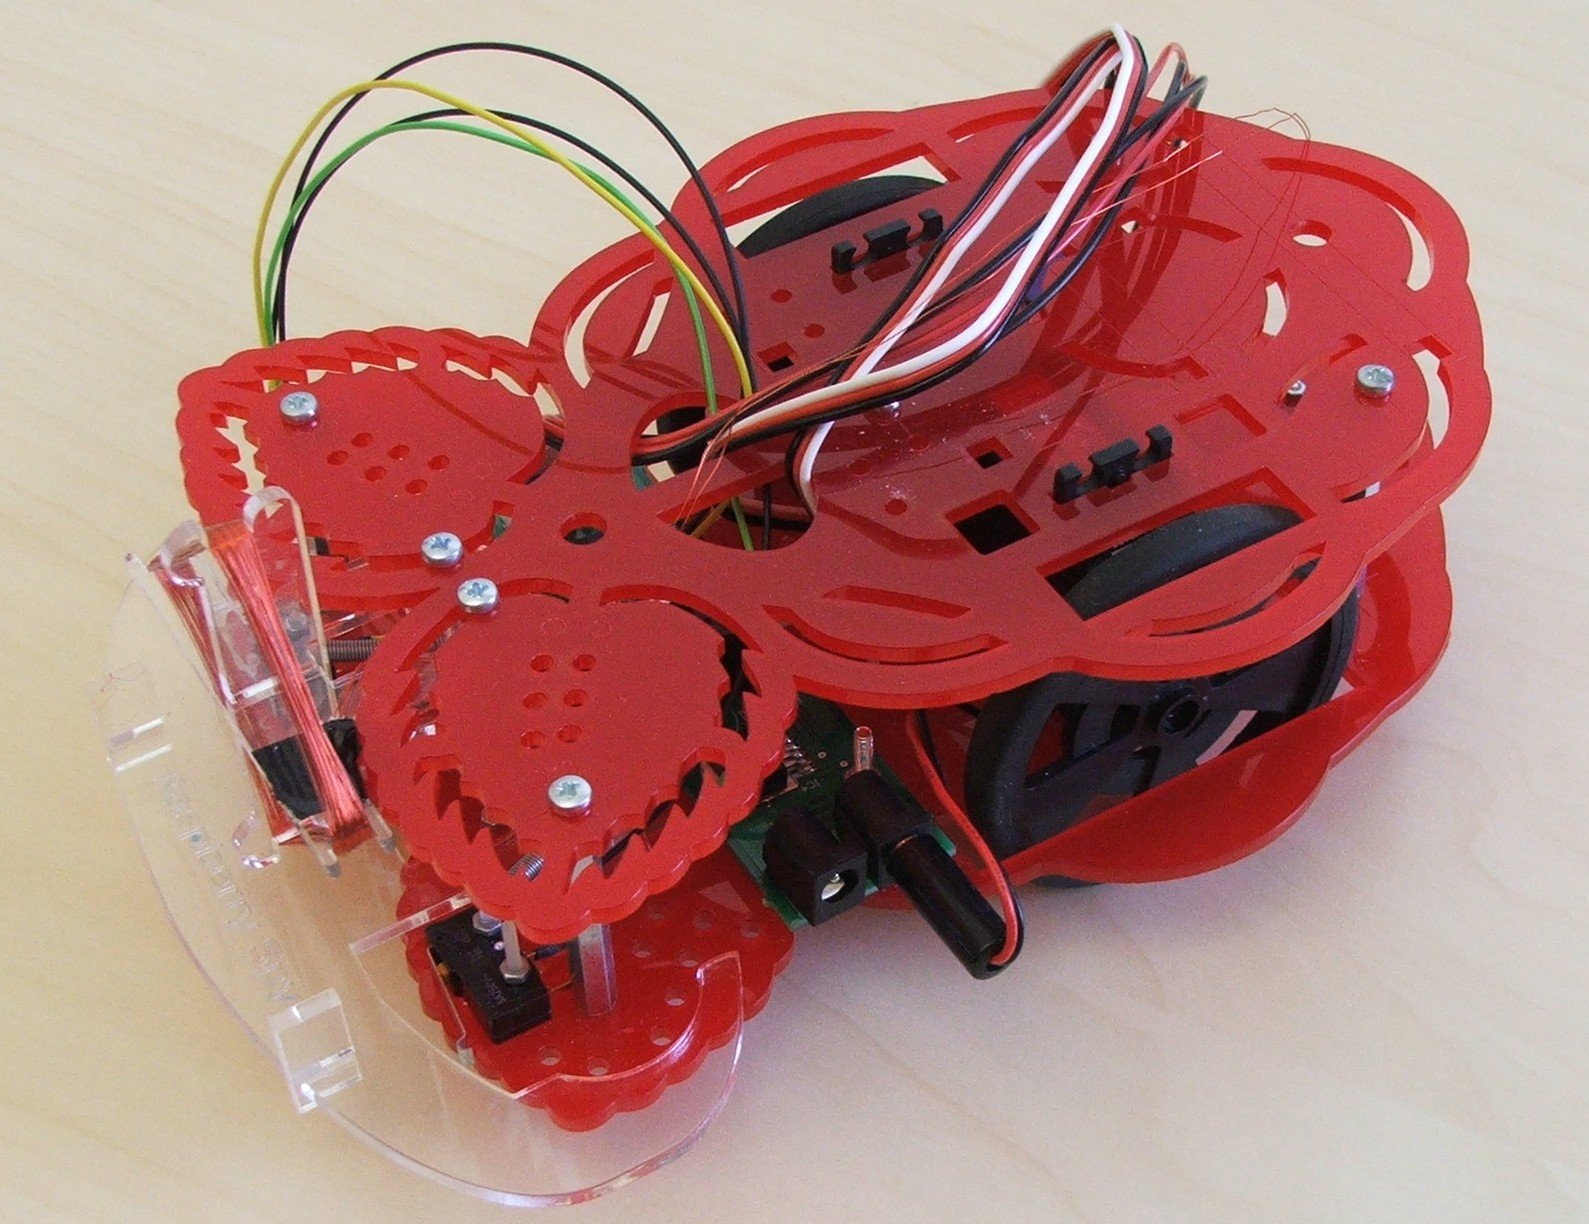 Robot Chassis - Physical Computing with Raspberry Pi